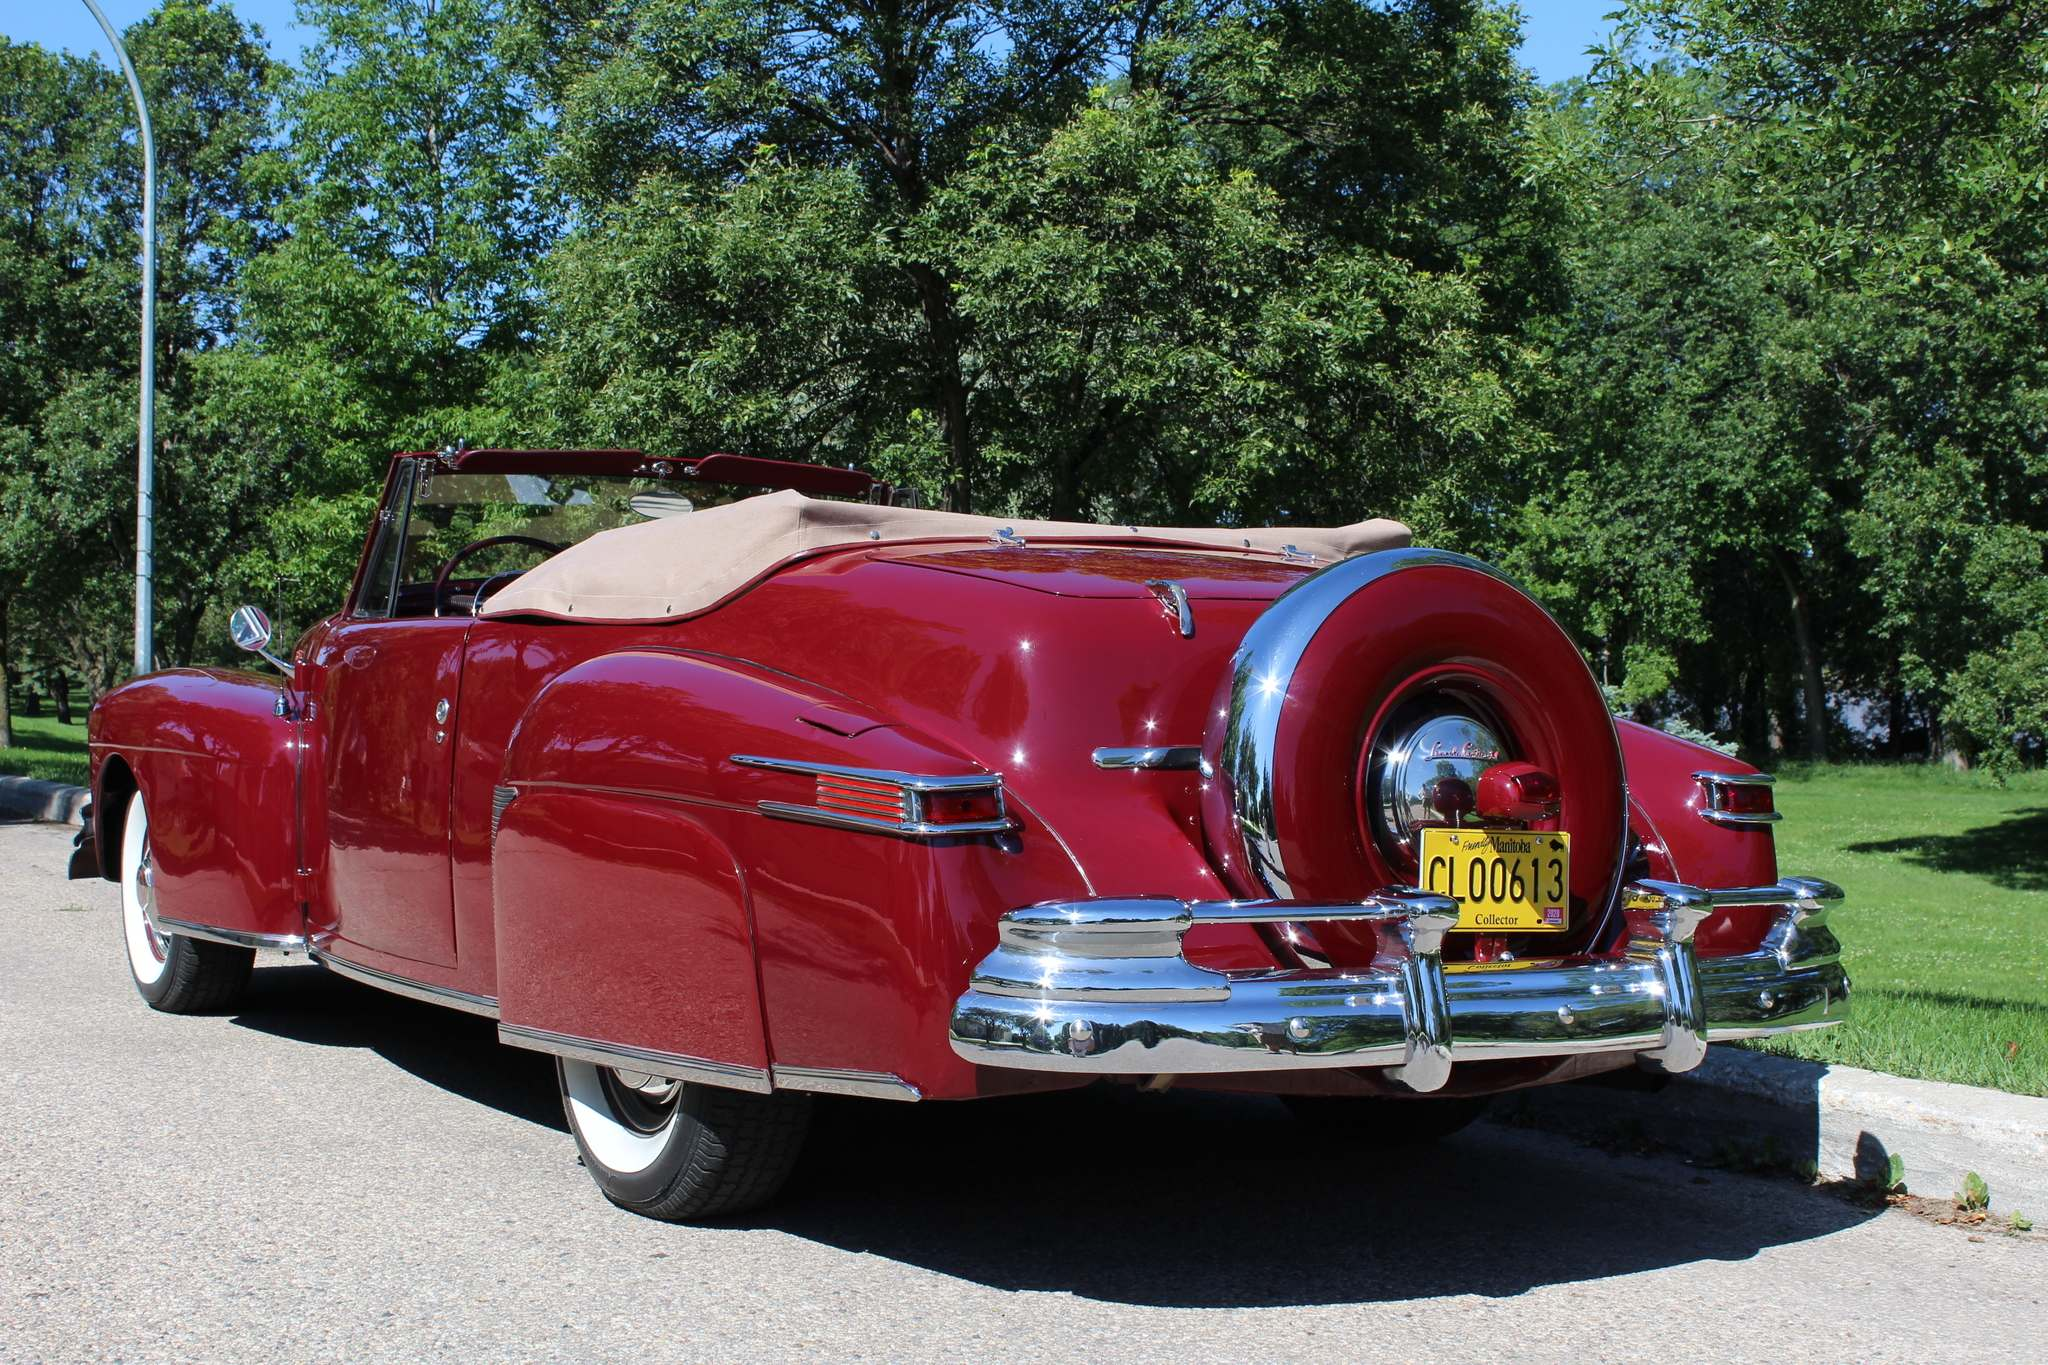 Photos by Larry D'Argis / Winnipeg Free PressAt 4,315 pounds, with an overall 18 feet, this 1946 Continental is a substantial vehicle, and only one of 201 built.